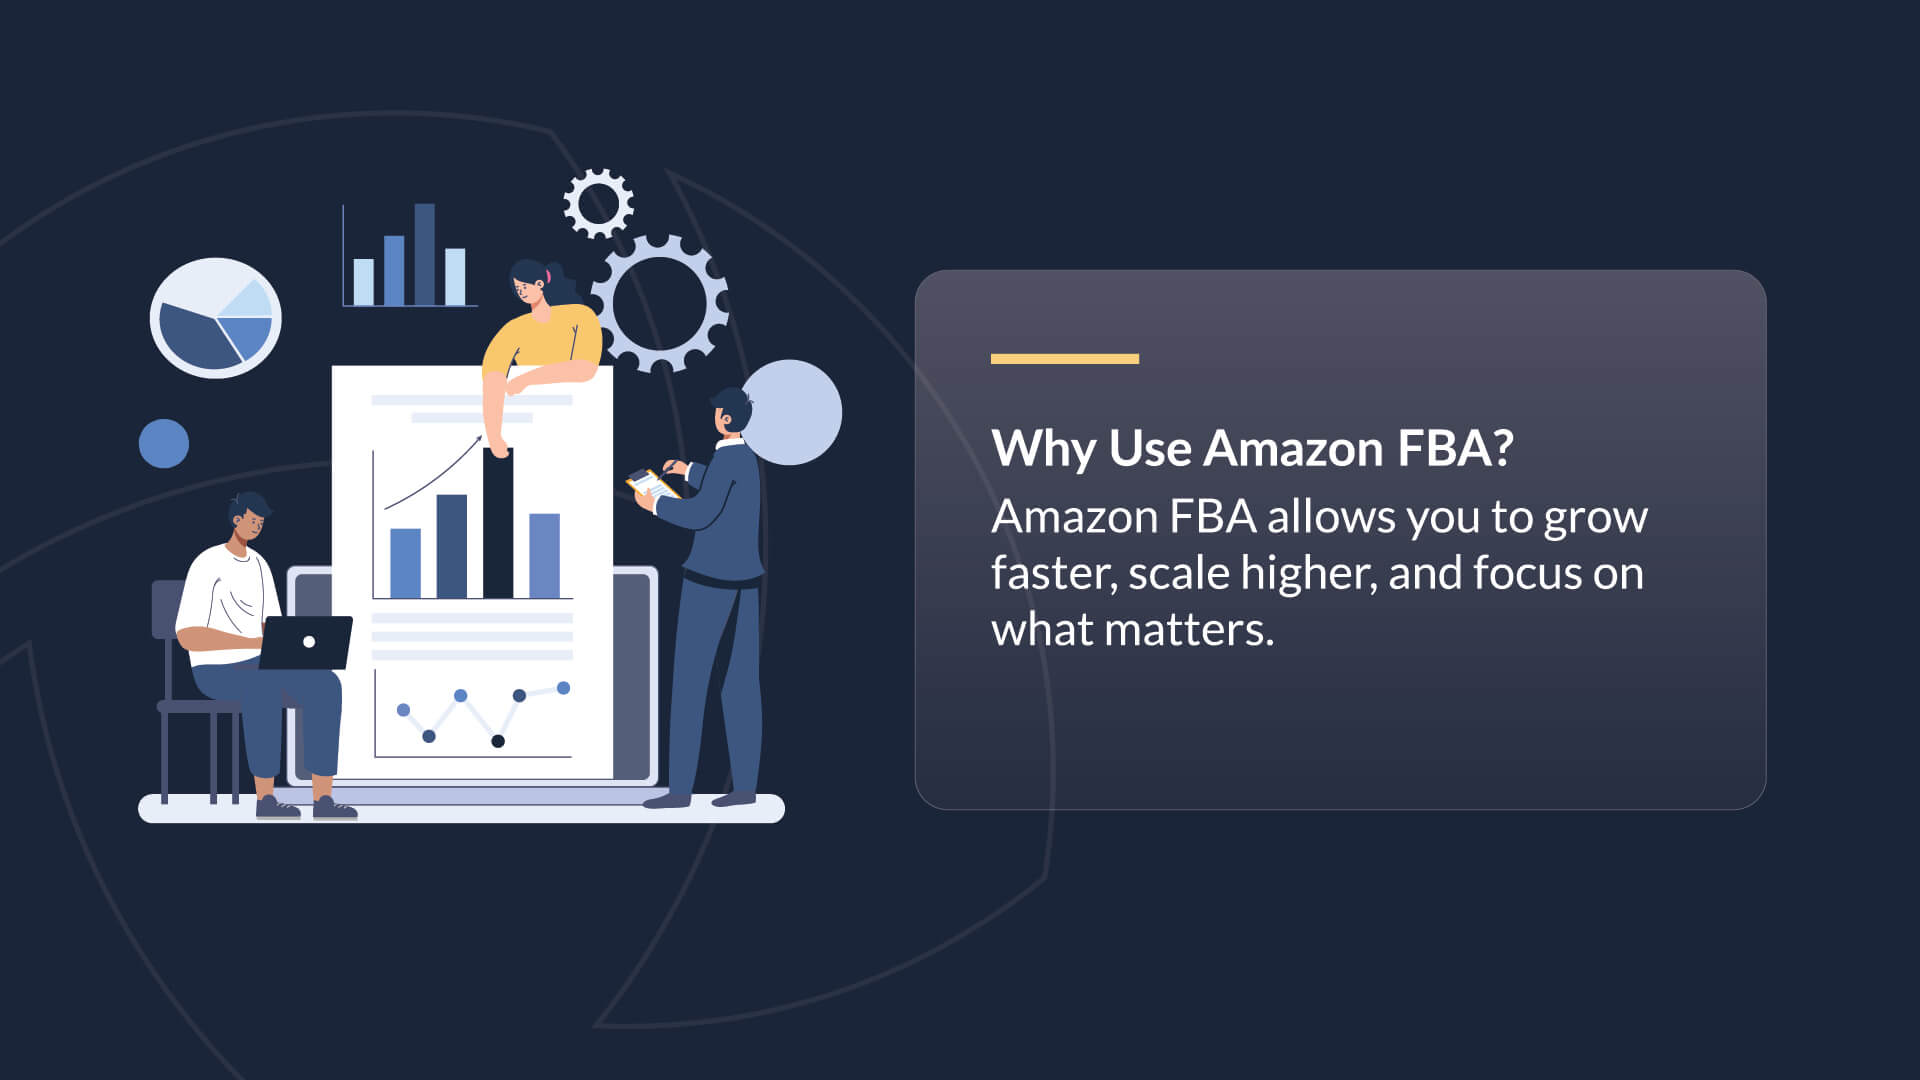 Why use Amazon FBA? Amazon FBA allows you to grow faster, scale higher, and focus on what matters.